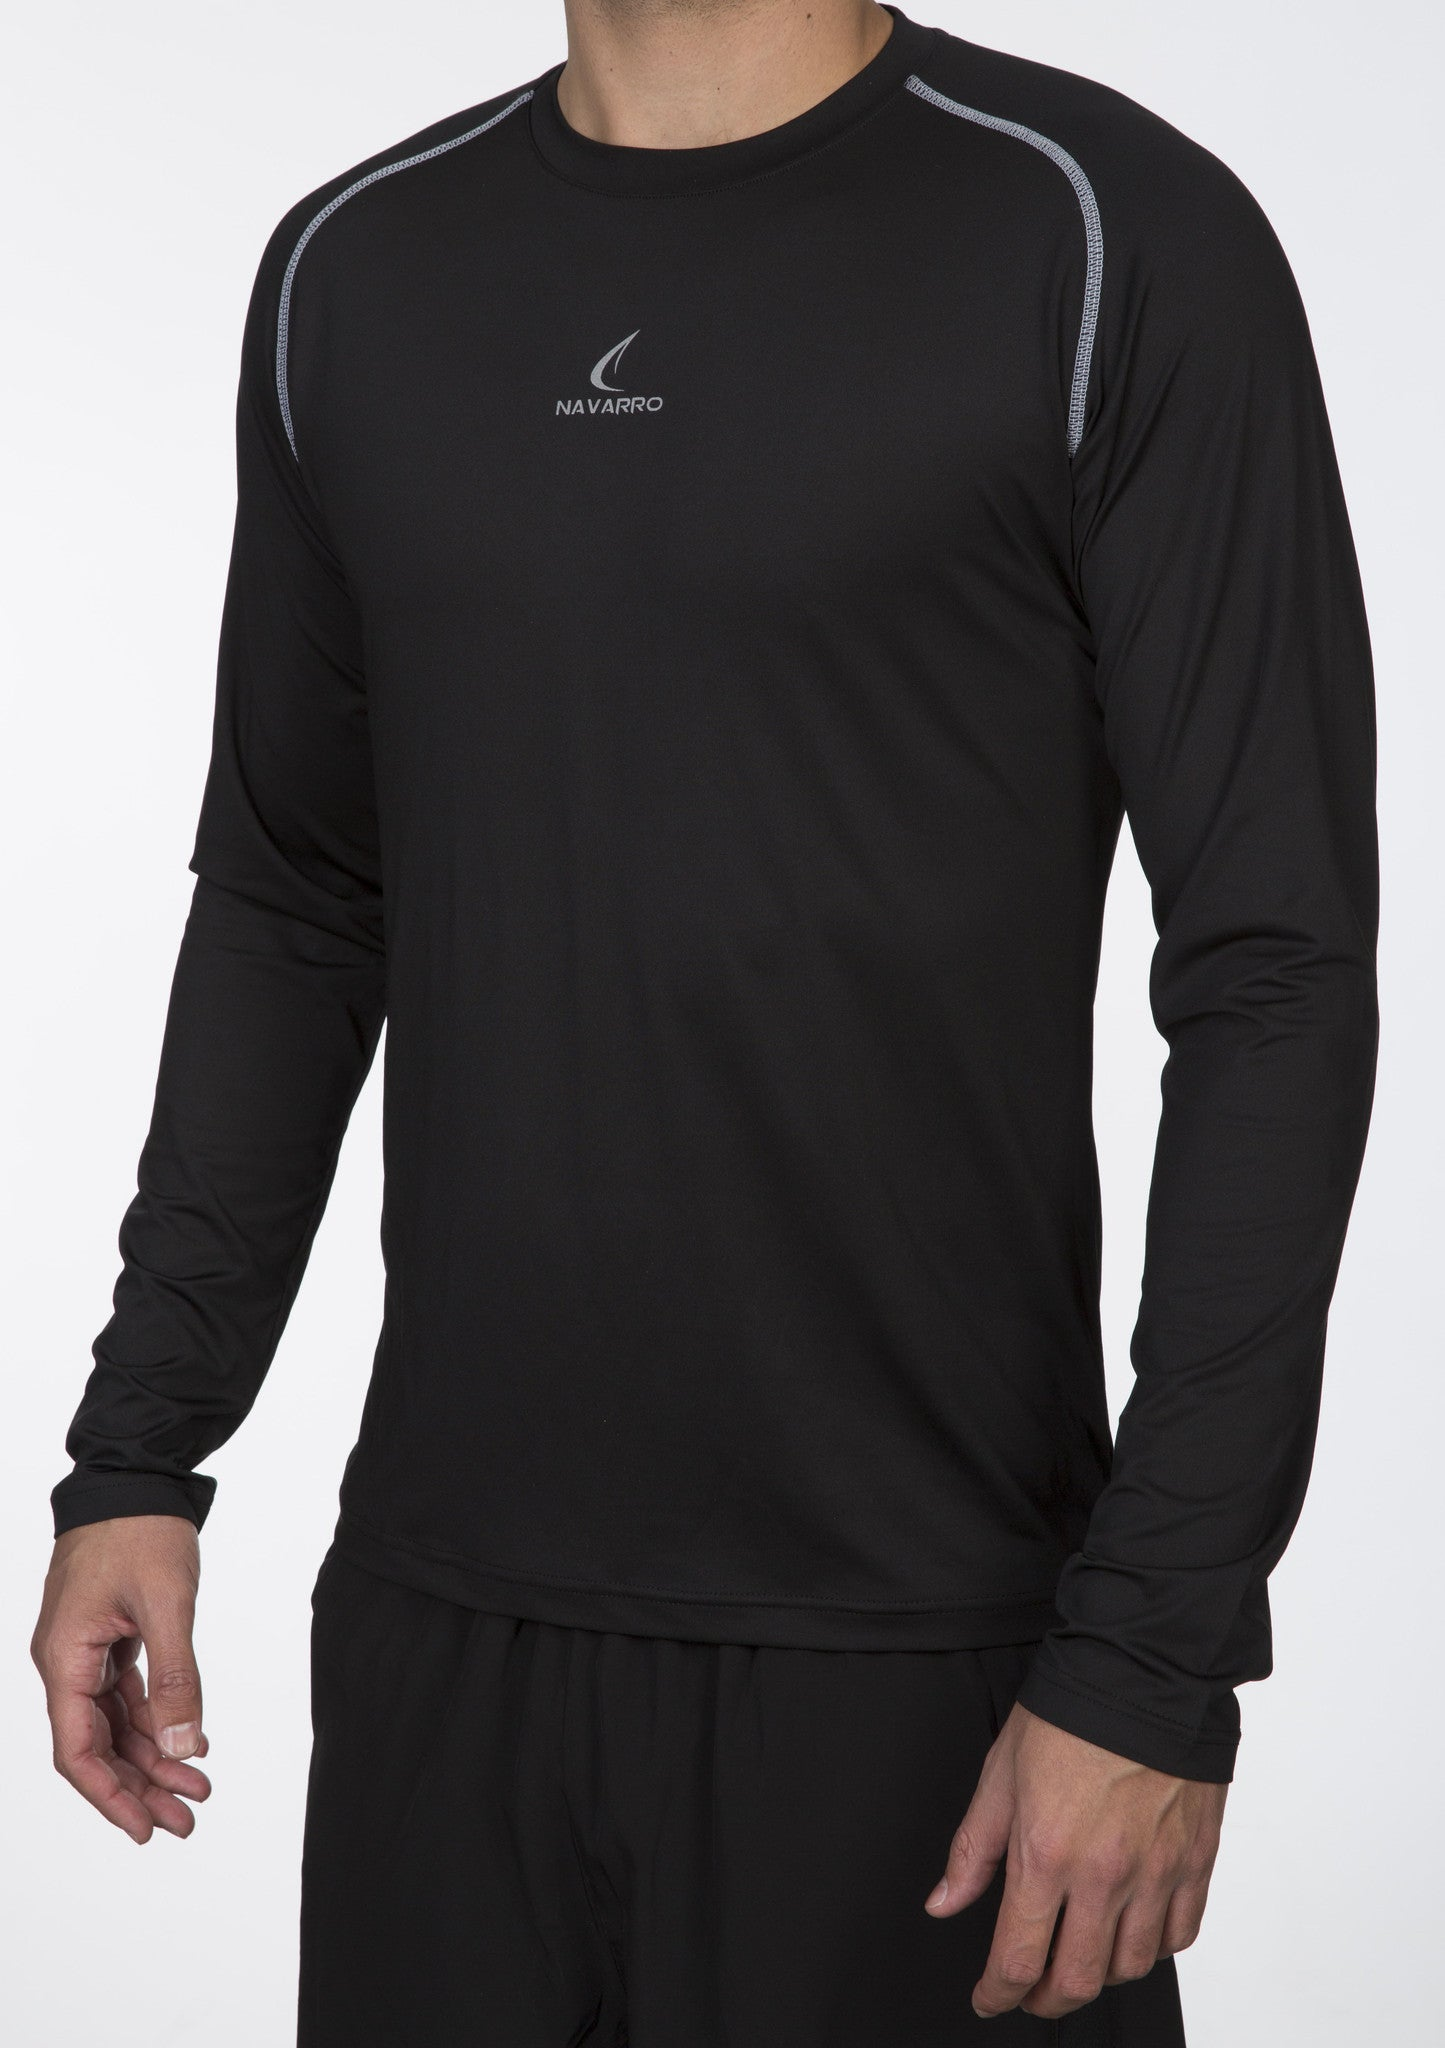 Men's Muscles Compressed Long-Sleeve Shirt